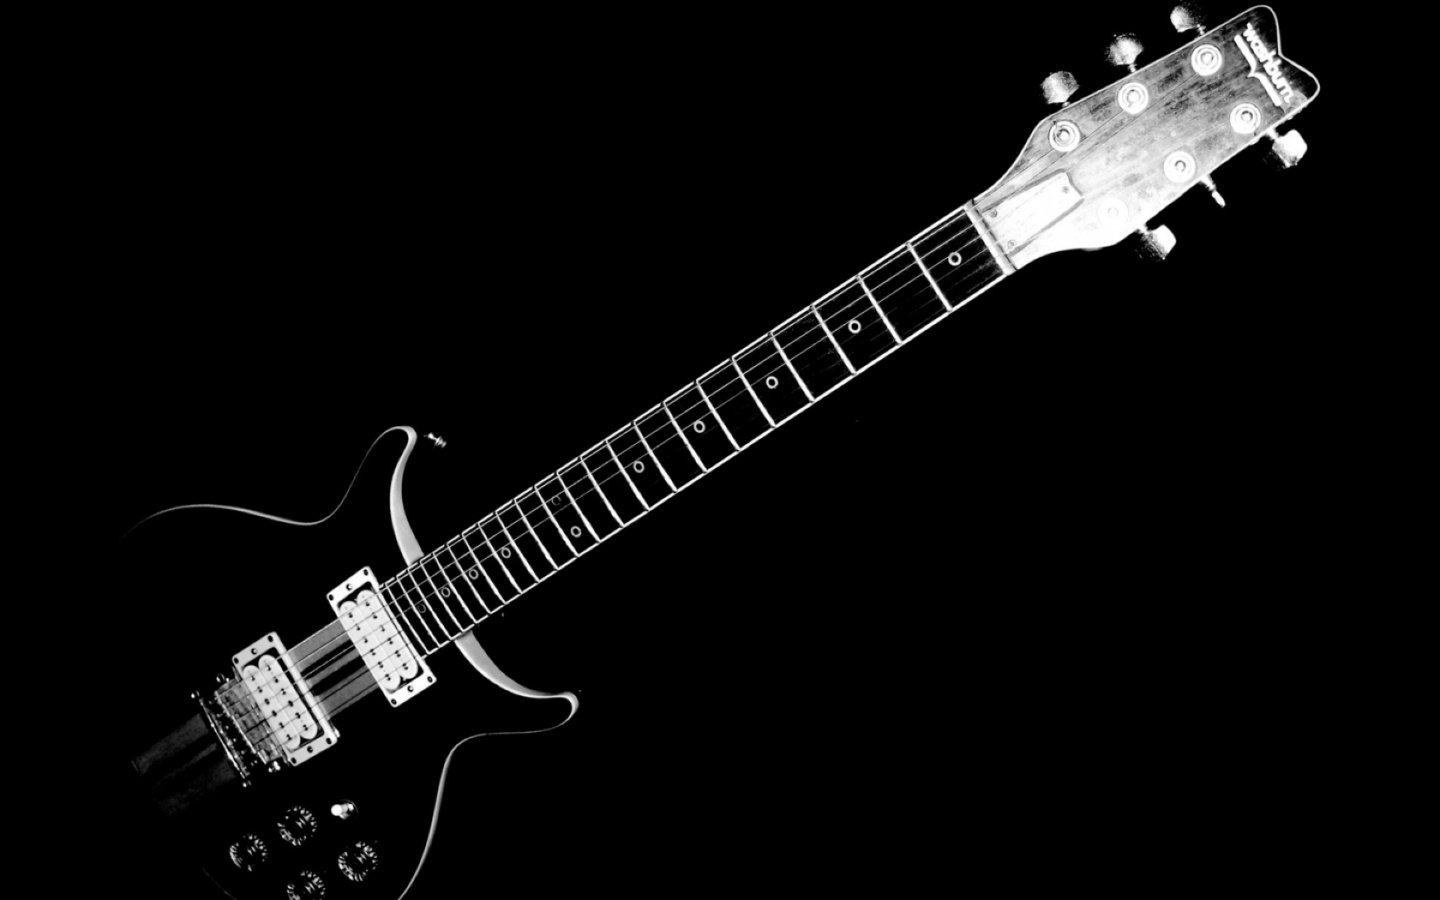 1440x900 Black and White Electric Guitar desktop PC and ...